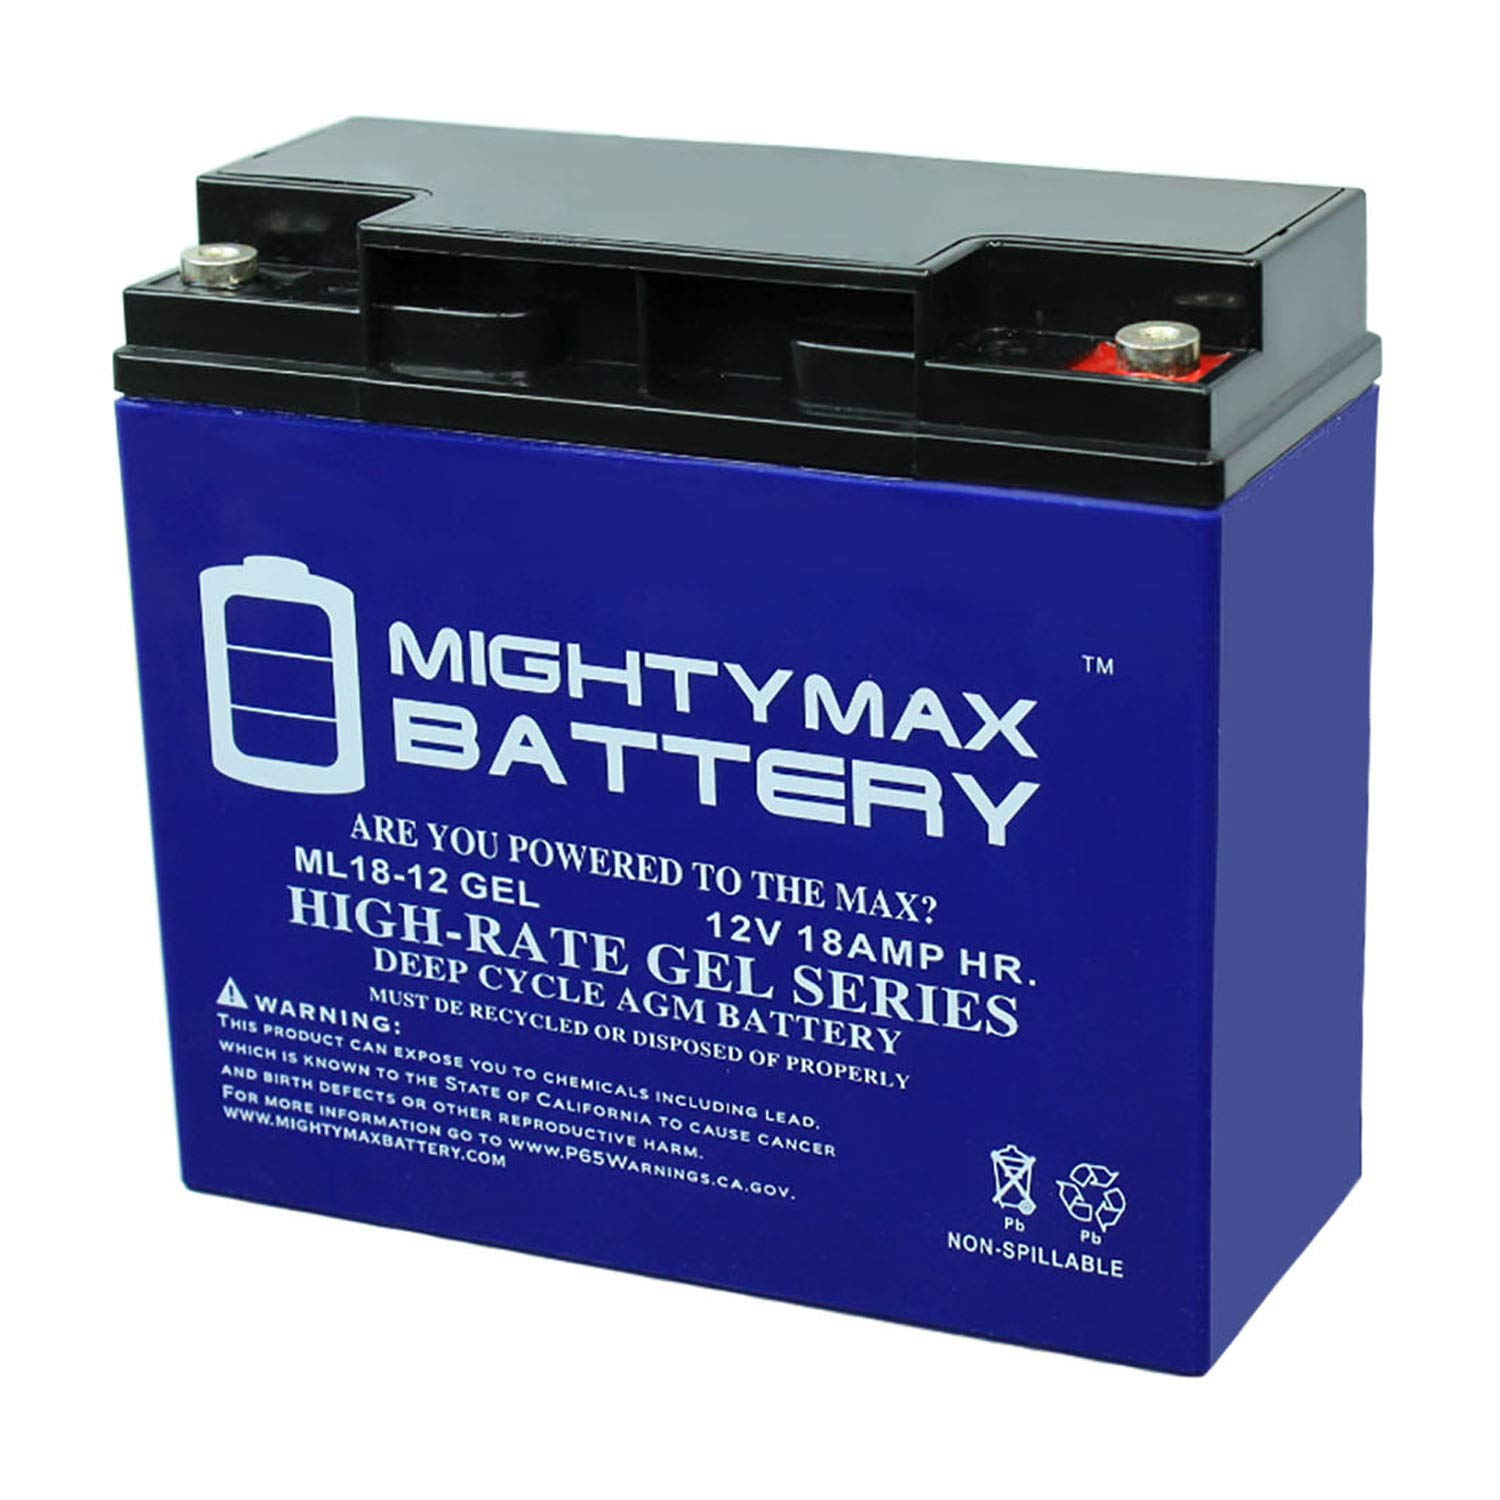 Mighty Max Battery 12V 18AH Gel Battery for E-Wheels EW-36 Mobility Scooter Brand Product by Mighty Max Battery